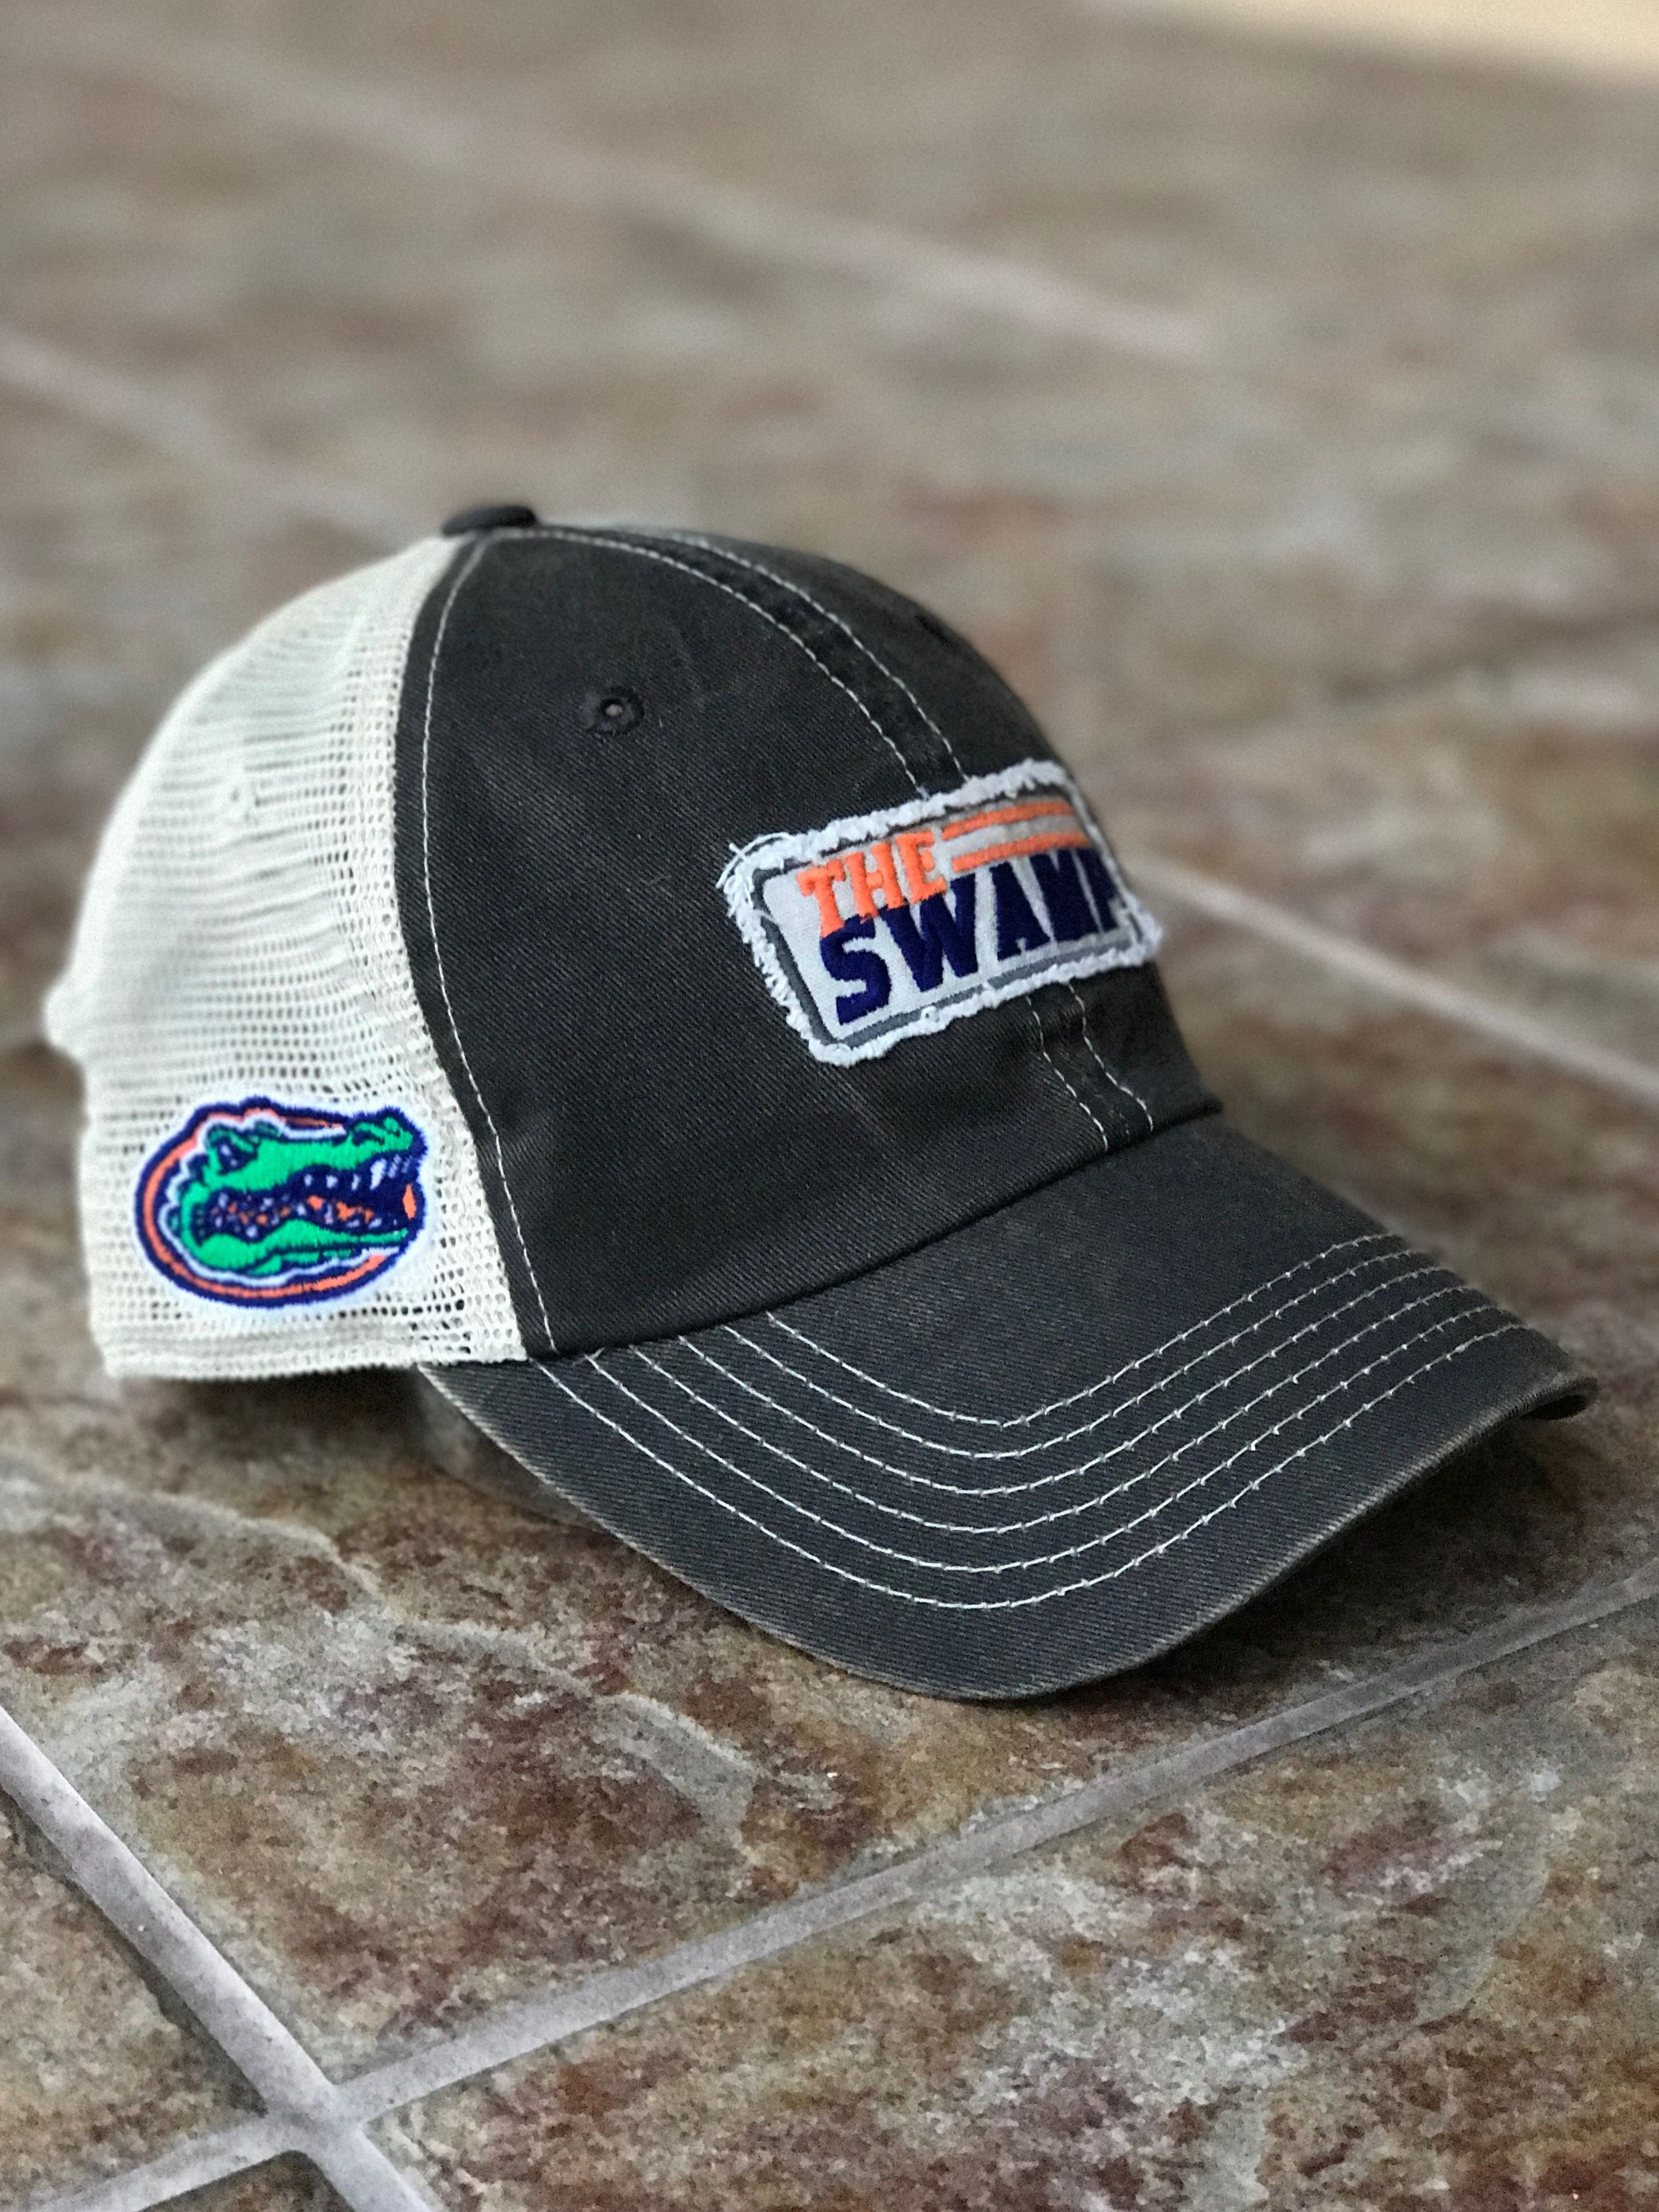 0e43caca0f4 Florida Gator - The Swamp trucker hat. New!! This is the  it  hat of the  season. Swoon!